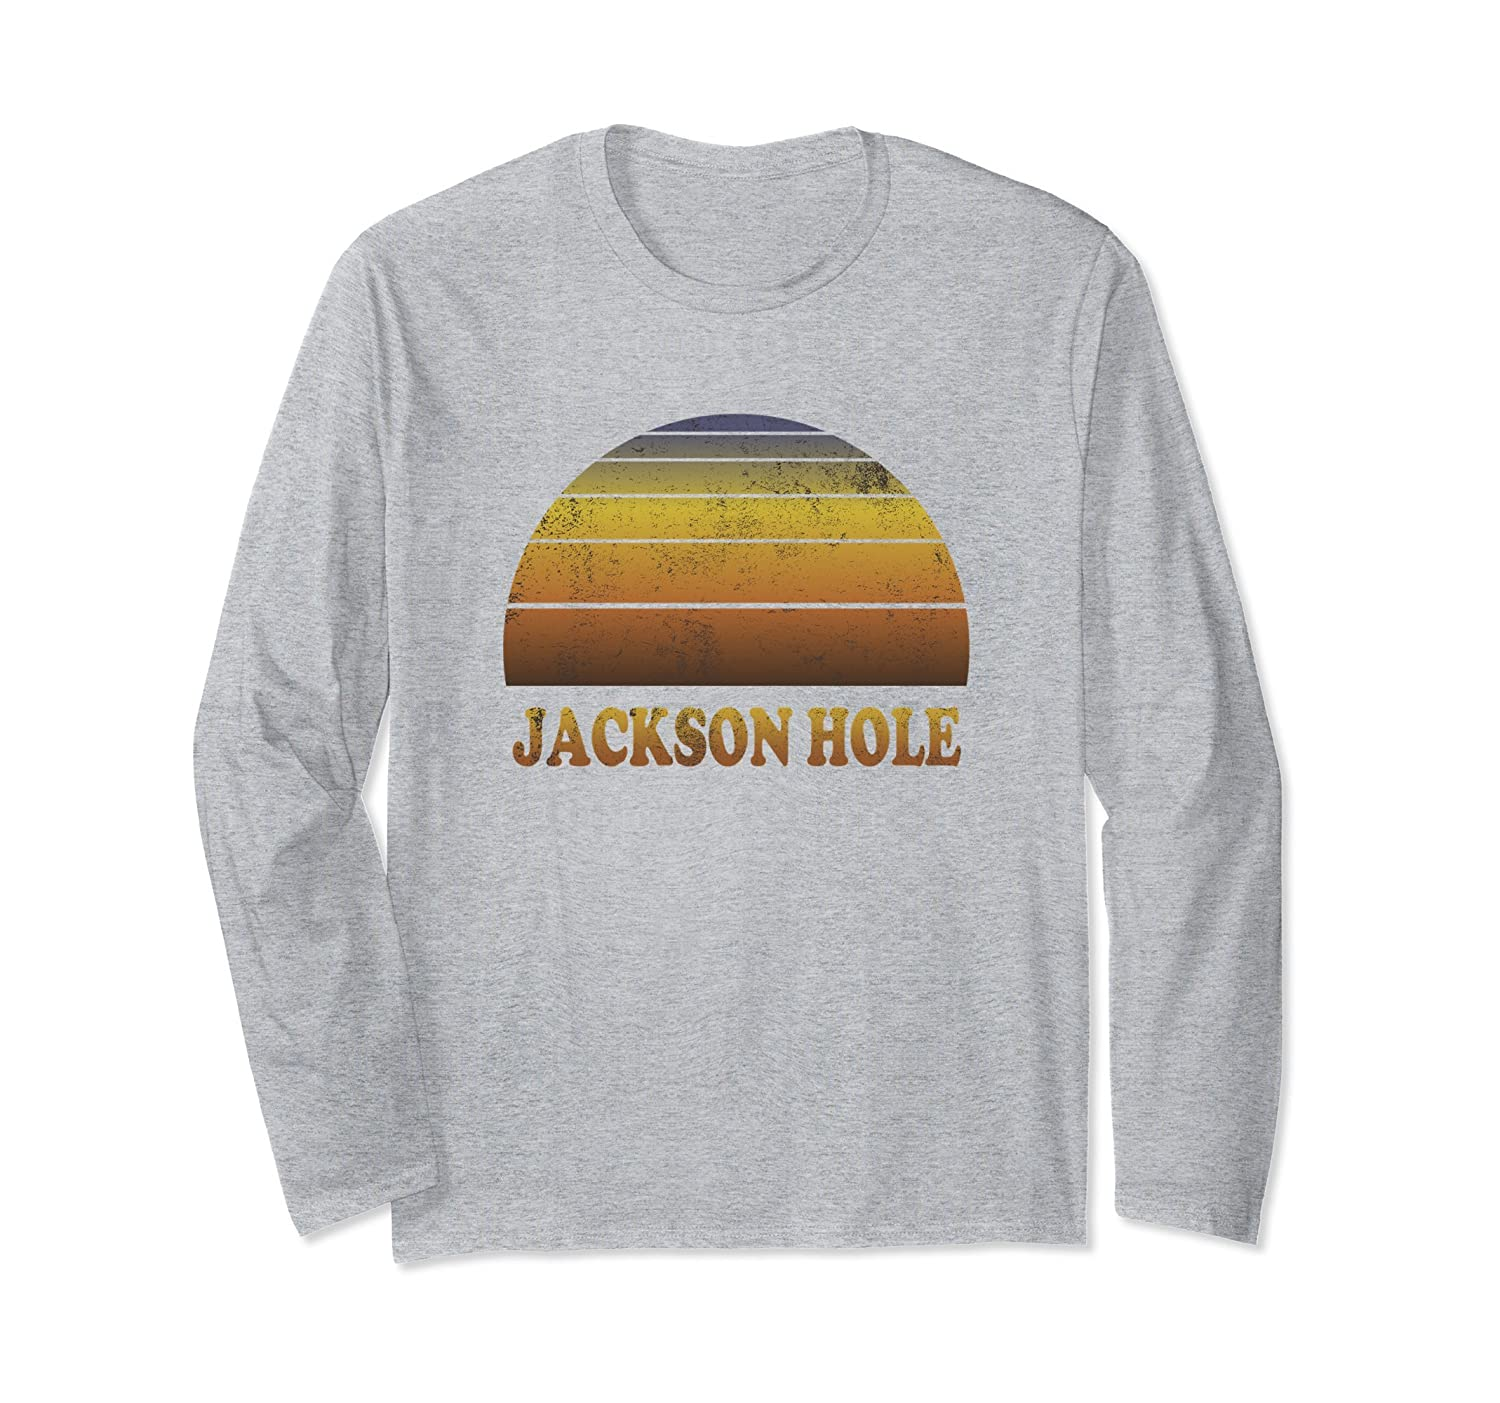 Jackson Hole Vacation Shirt Adult Teen Kids Wyoming Apparel-TH